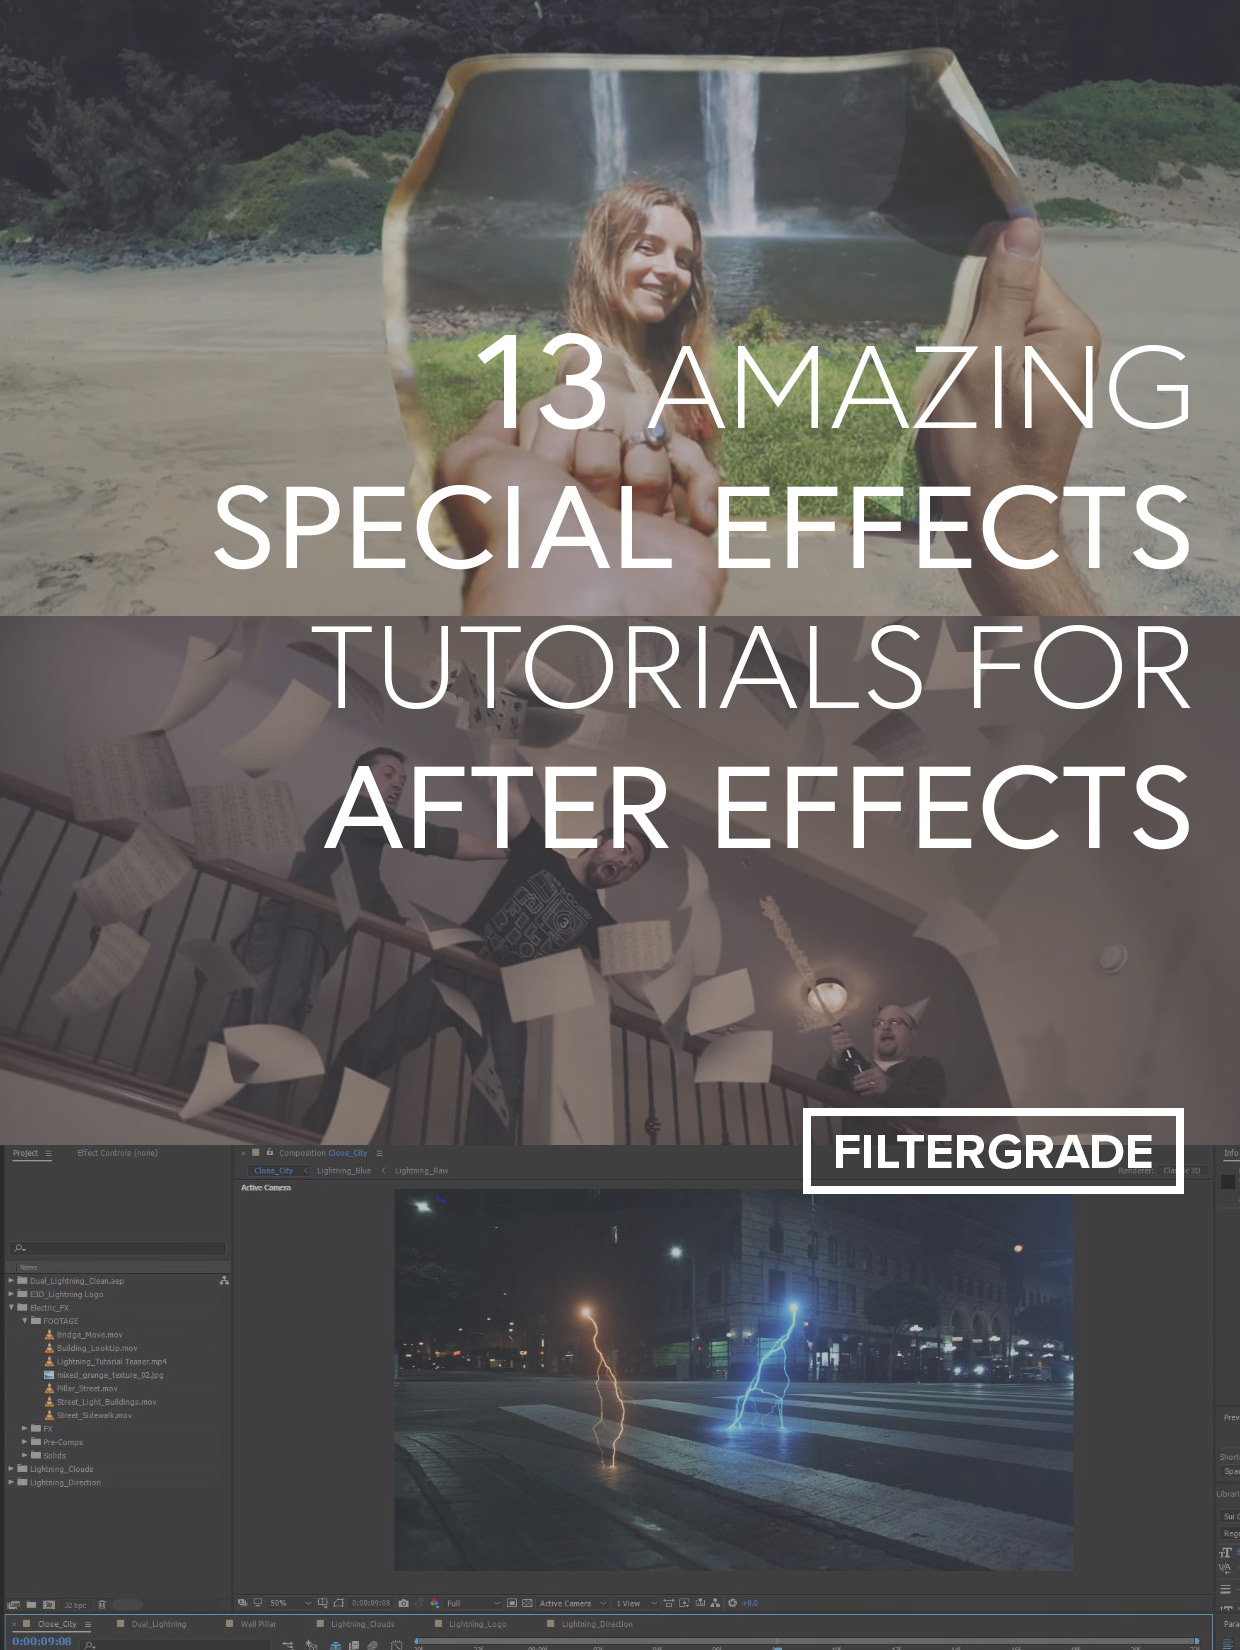 13 Amazing Special Effects Tutorials for After Effects